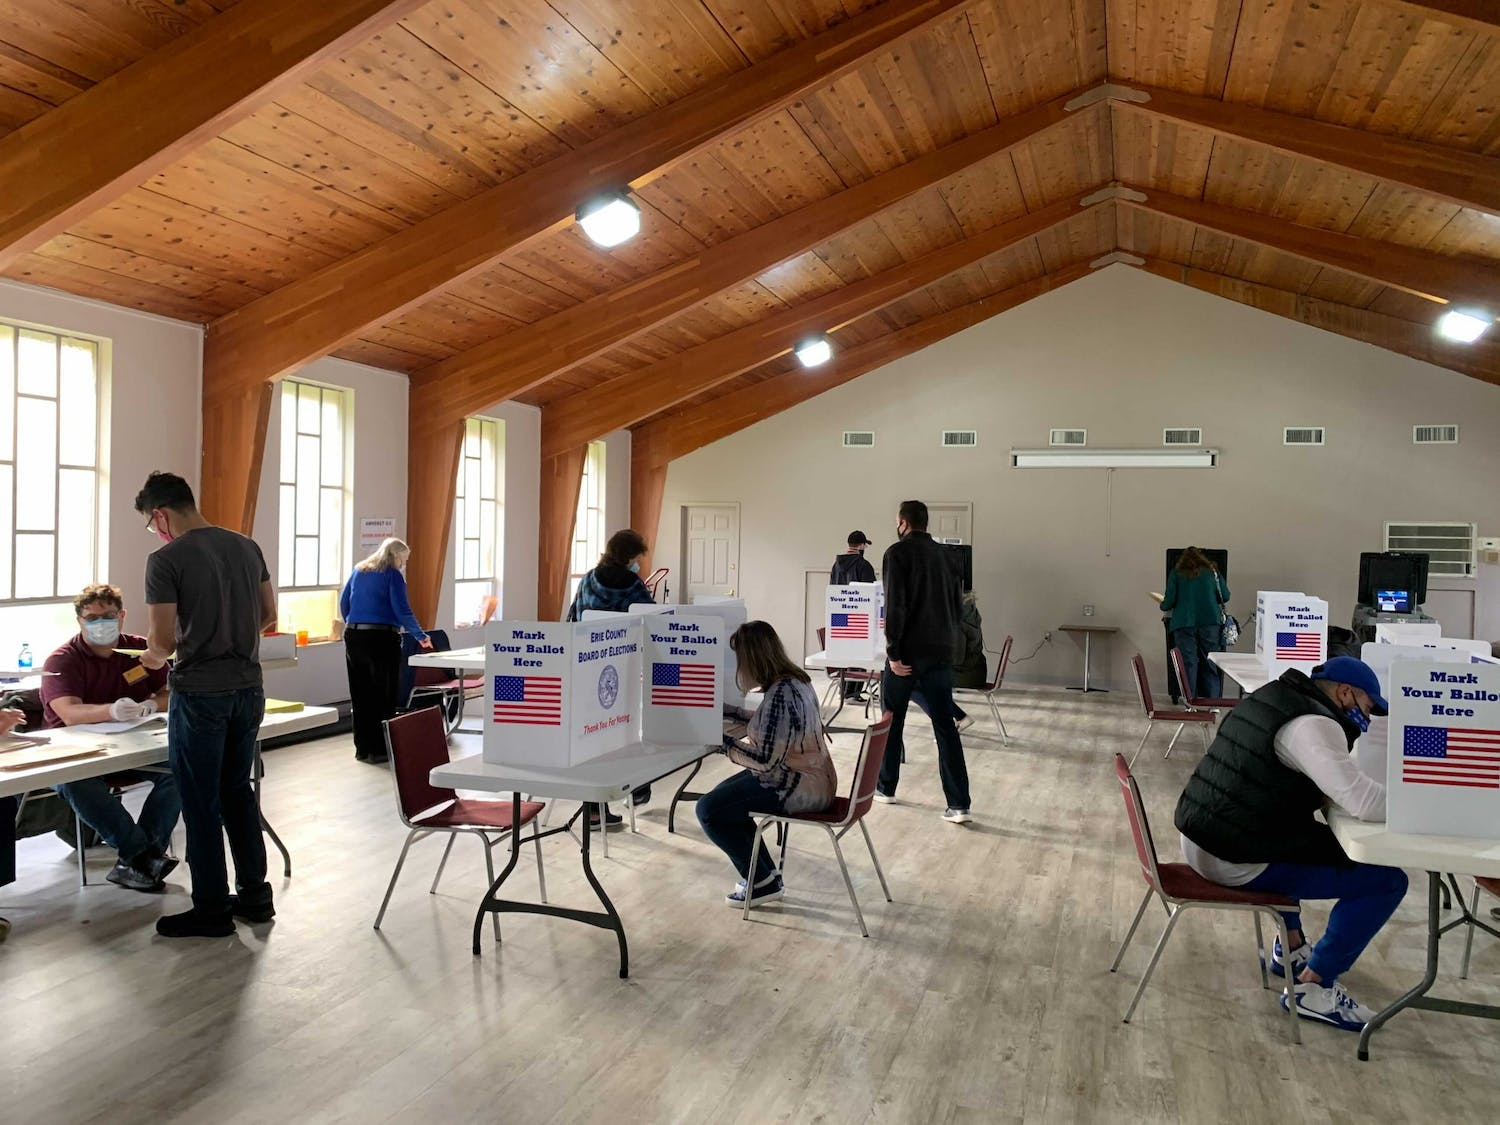 People vote in Amherst Baptist Church on Election Day